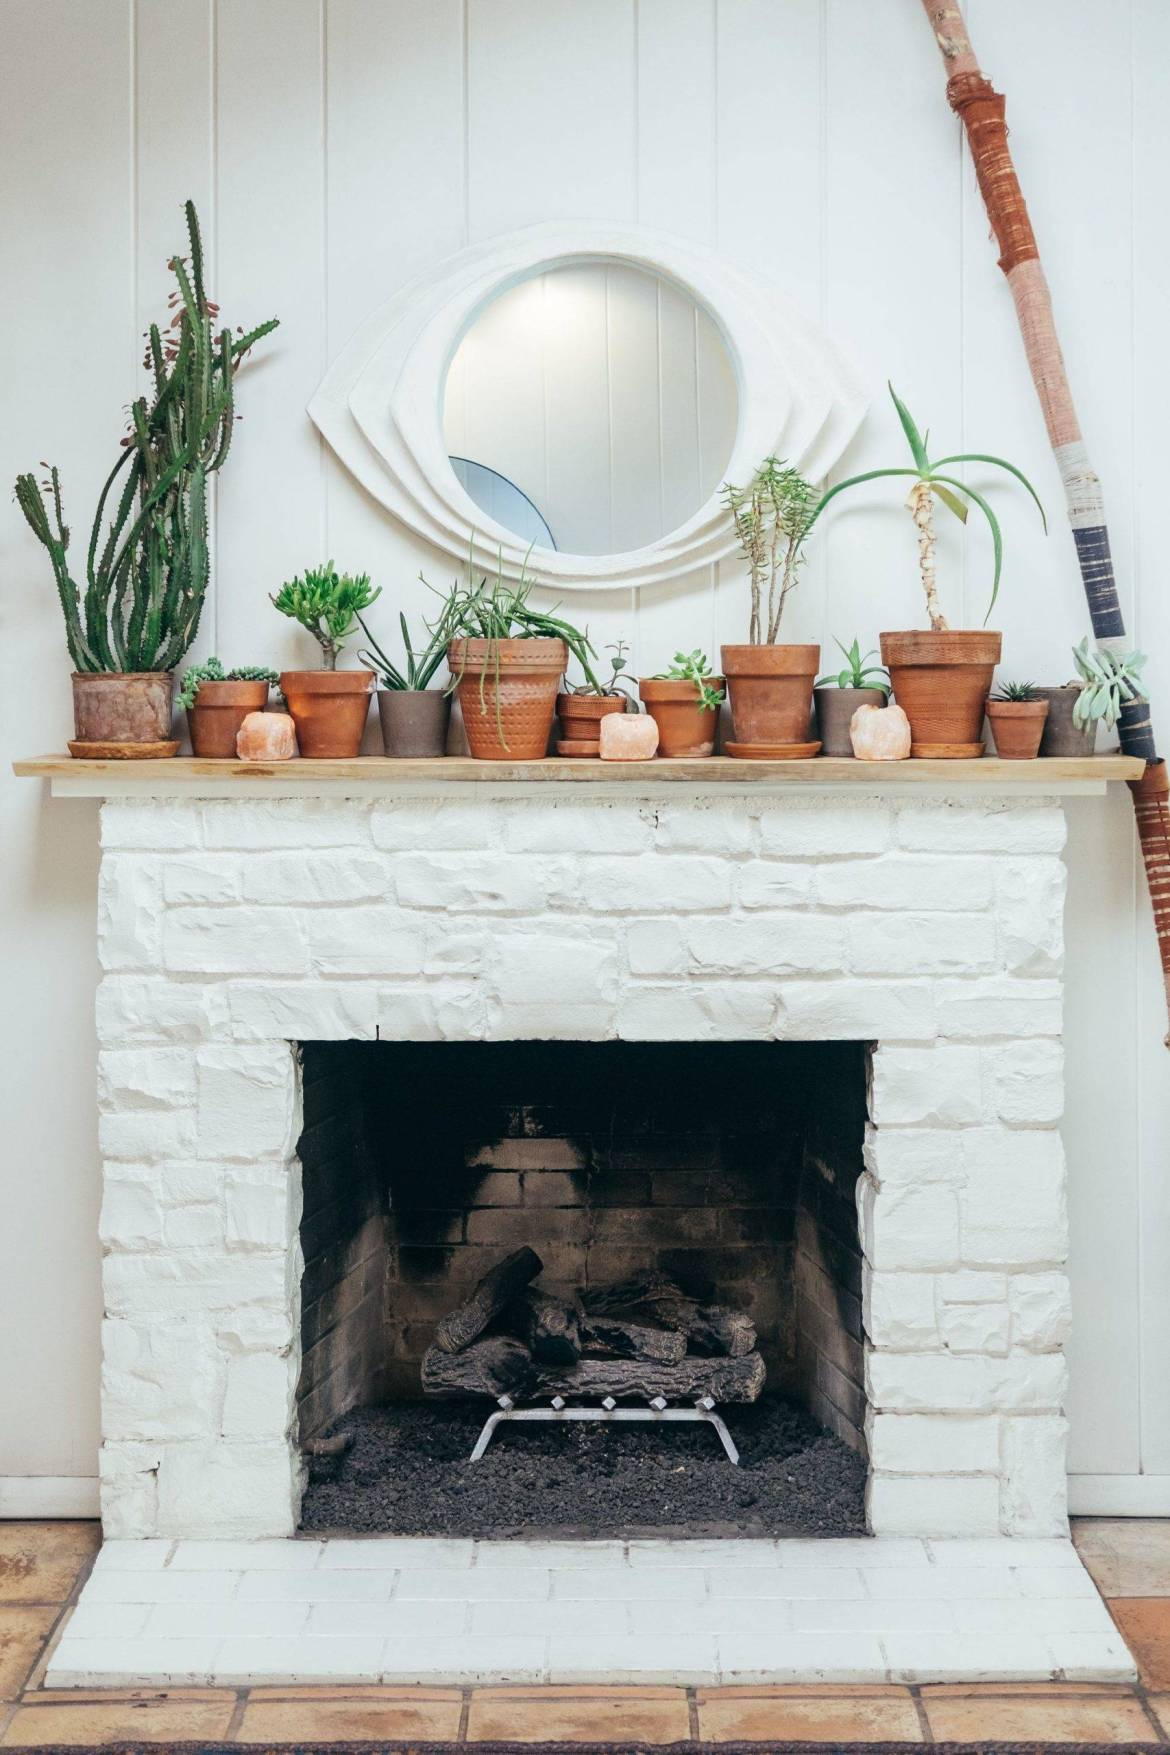 Fall chores: Clean your fireplace